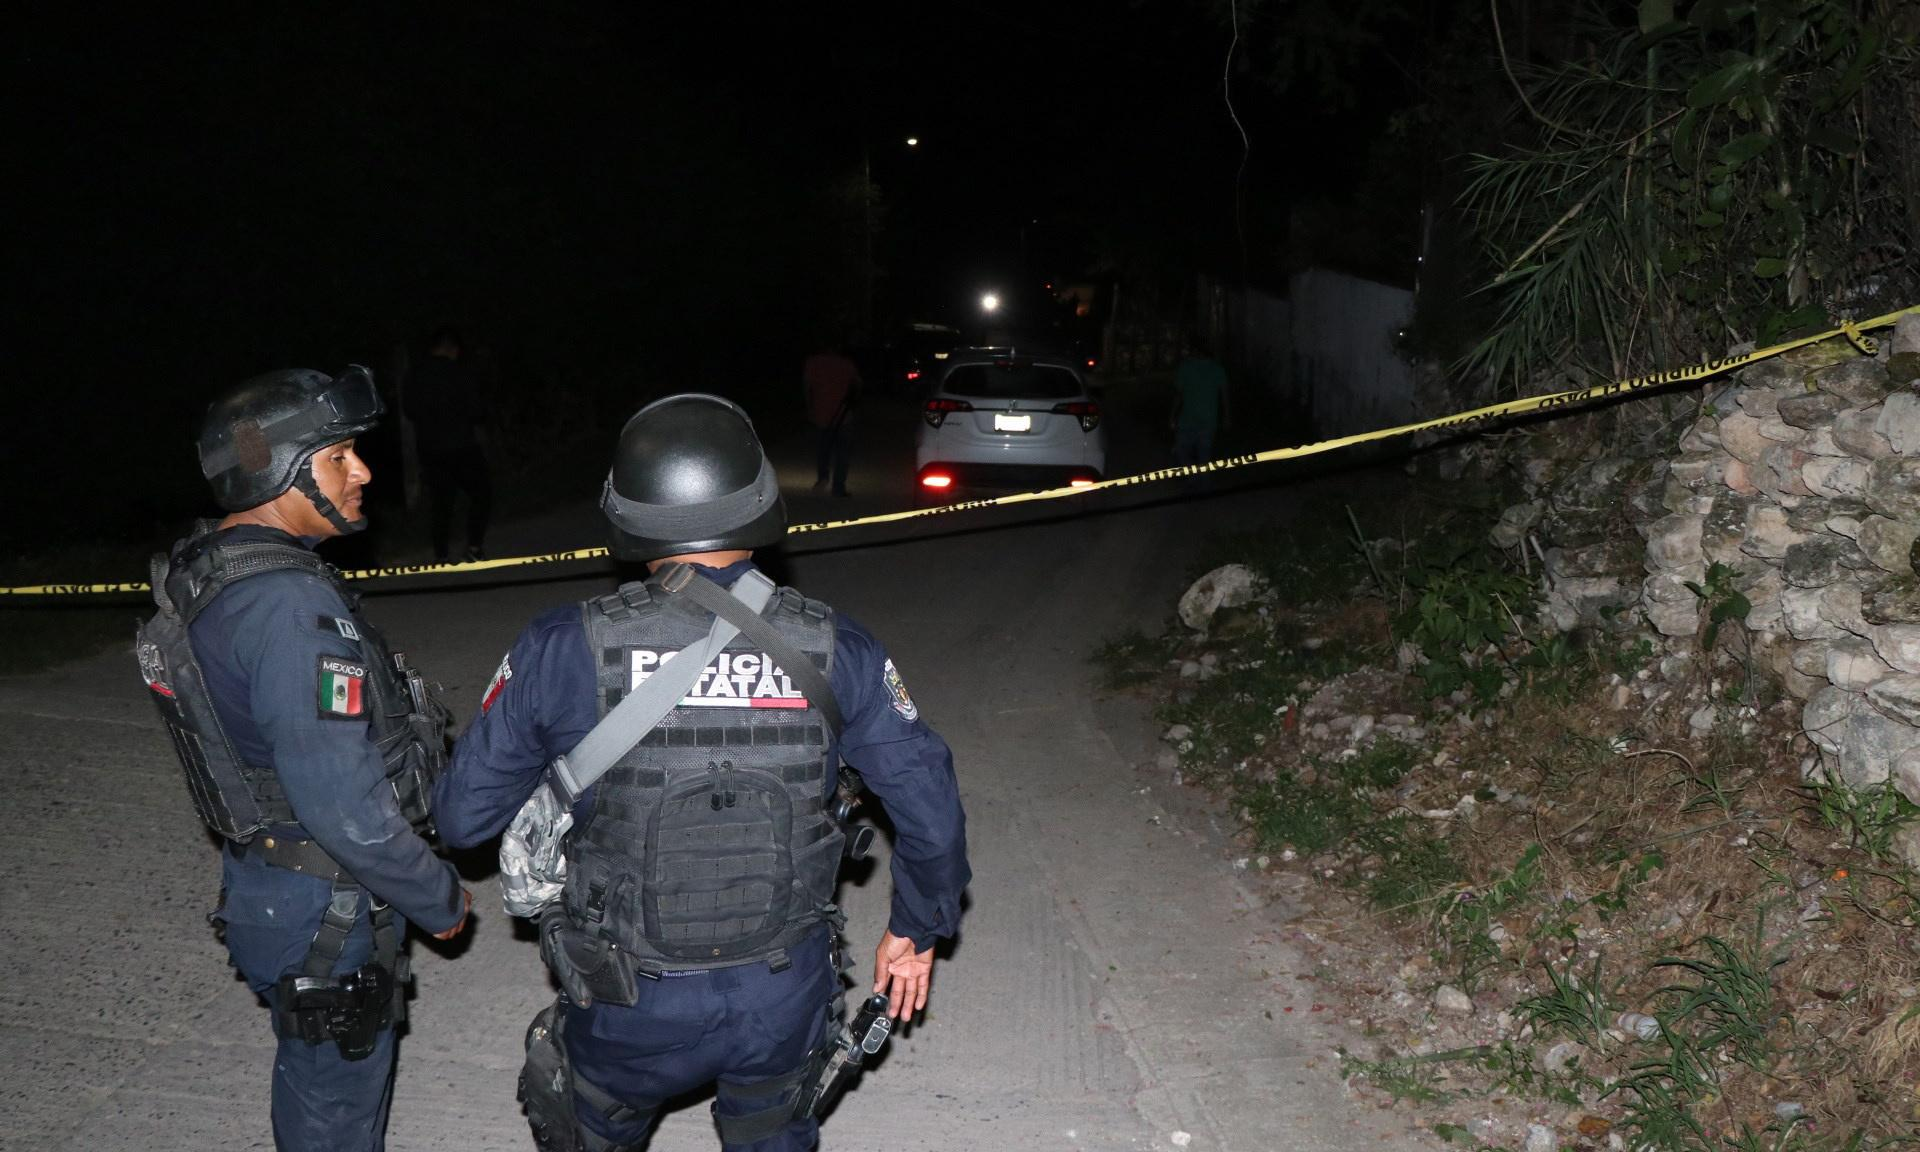 Mexican gunfight between army and civilians leaves 15 dead